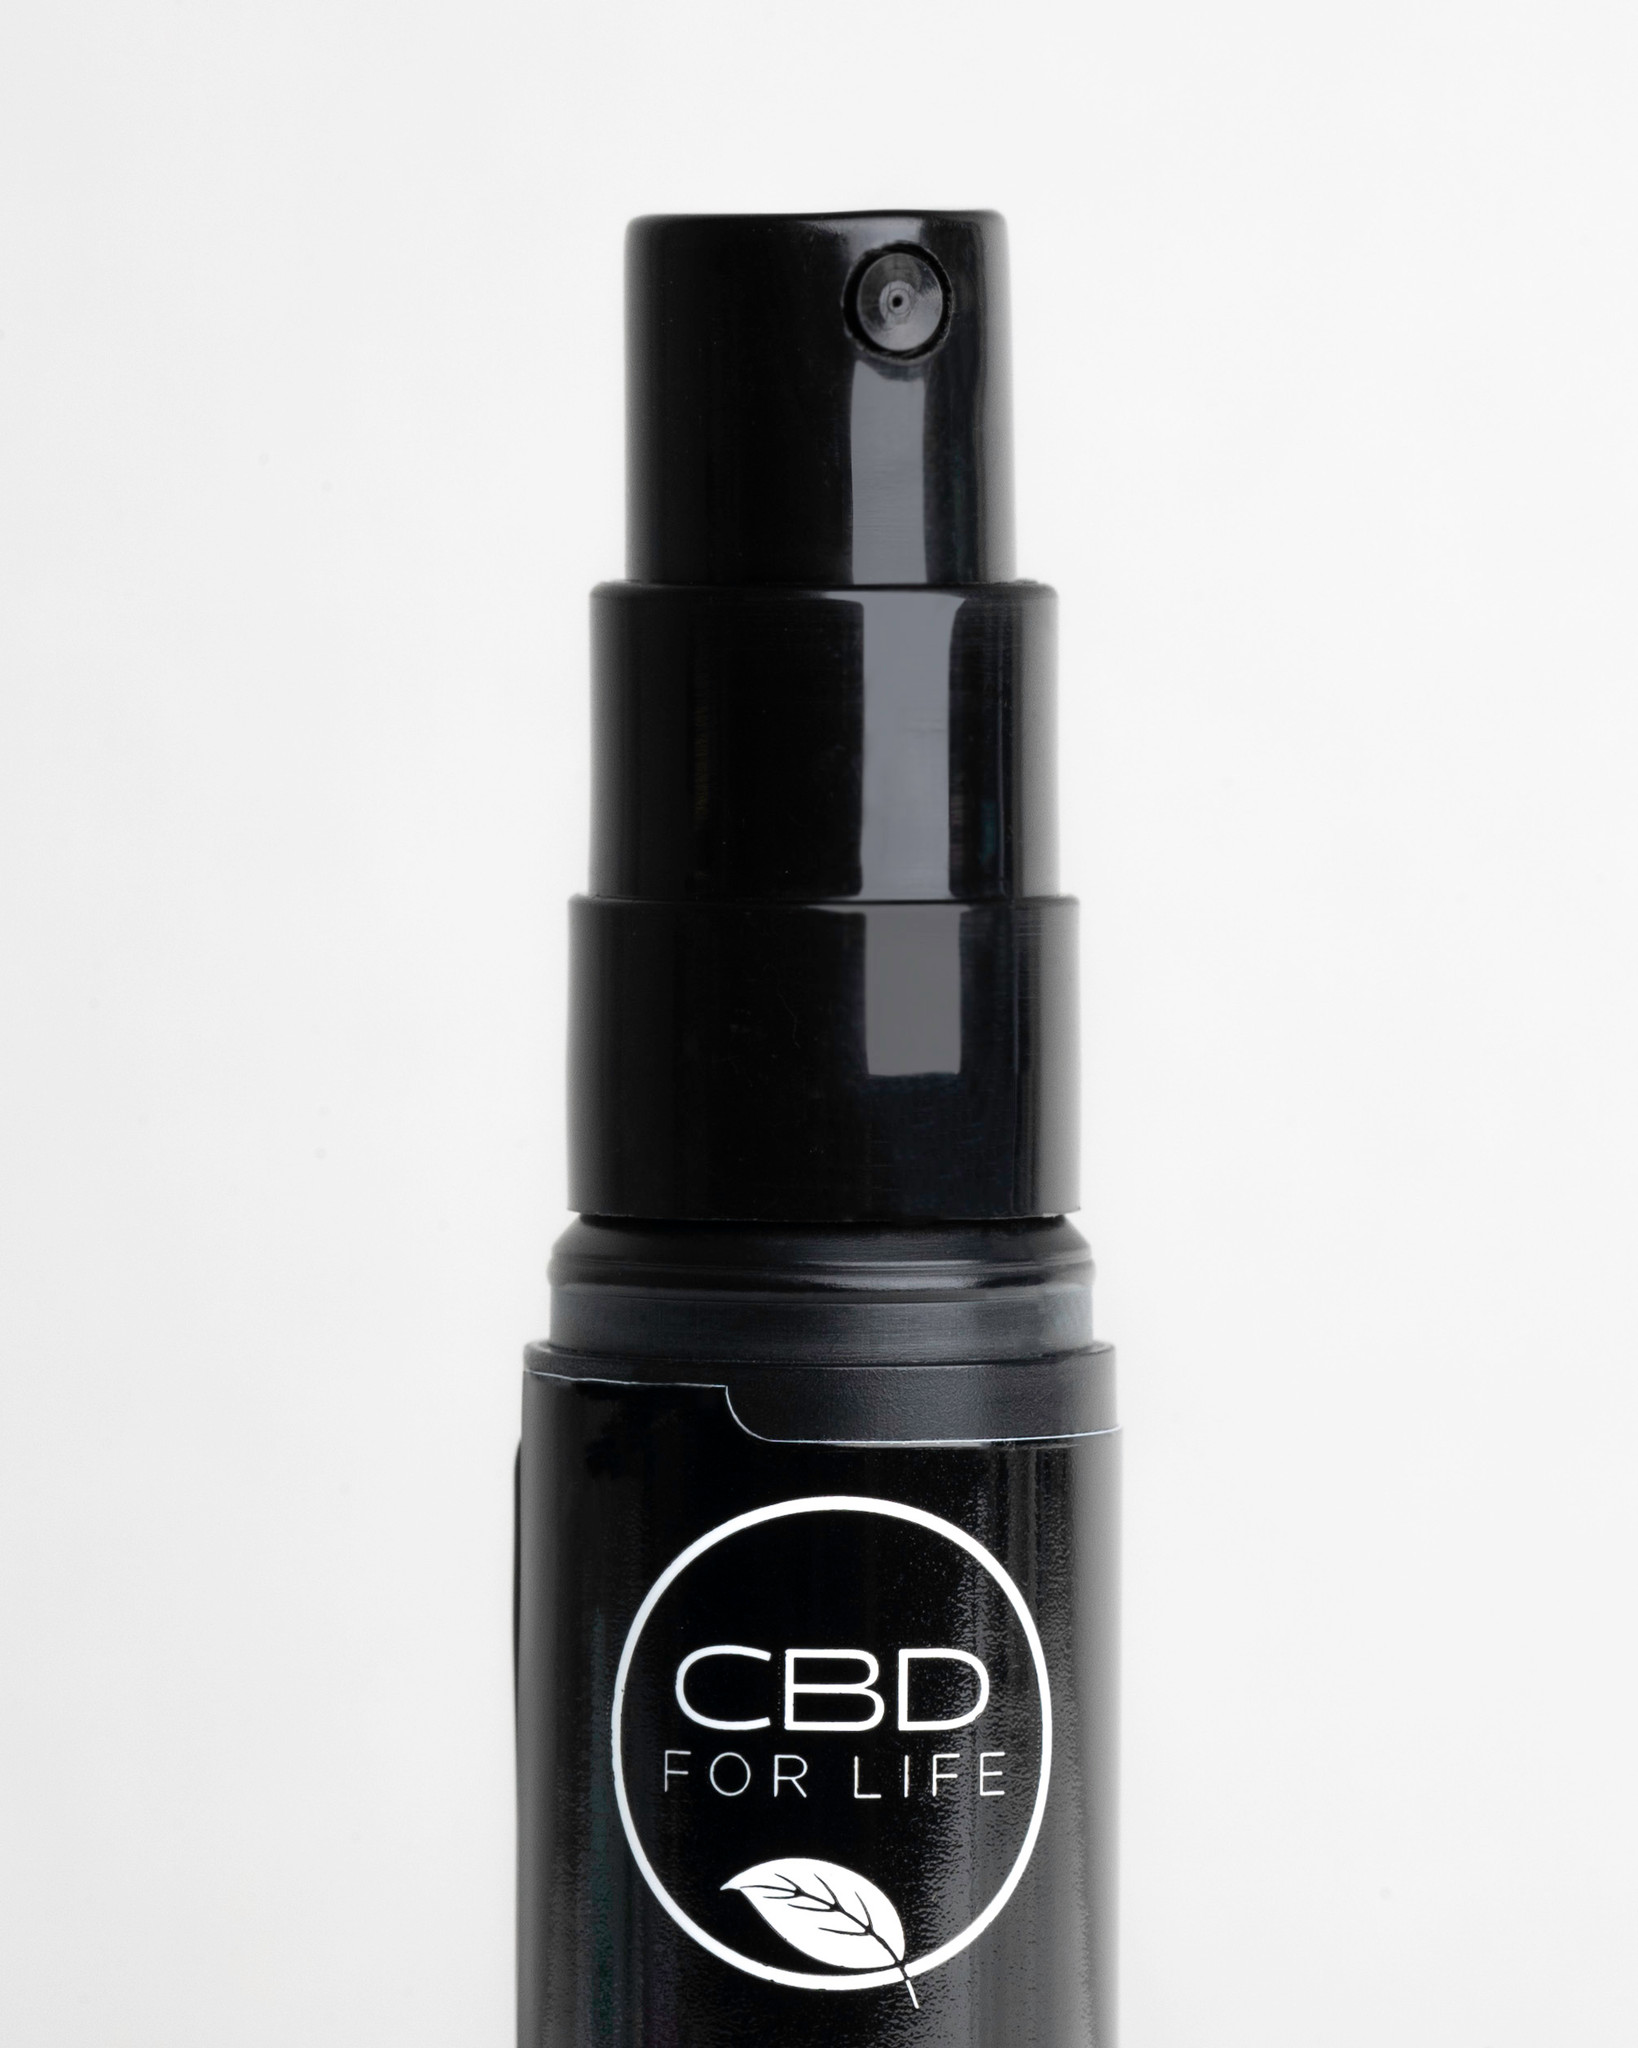 """Fast absorbing and fast acting, our CBD Oral Spray is the easiest and most convenient intake—just pump it under your tongue. Keep a CBD Oral Spray in your desk drawer, bedside table or handbag for a quick spray when you need it most. CBD oil spray is a best seller and loved by CBD consumers because of its ease of use. We recommend spraying our CBD oral spray under your tongue, or sublingually. Dosing sublingually  provides a quicker absorption of into the bloodstream through the capillaries for faster results. CBD spray is small and easy to carry, making our CBD oral spray great for travel. Consumers who have reviewed our CBD oil spray have called it, """"wonderful,"""" """"great,"""" """"amazing""""  and even """"the best product ever."""" CBD is transforming wellness and self-care."""